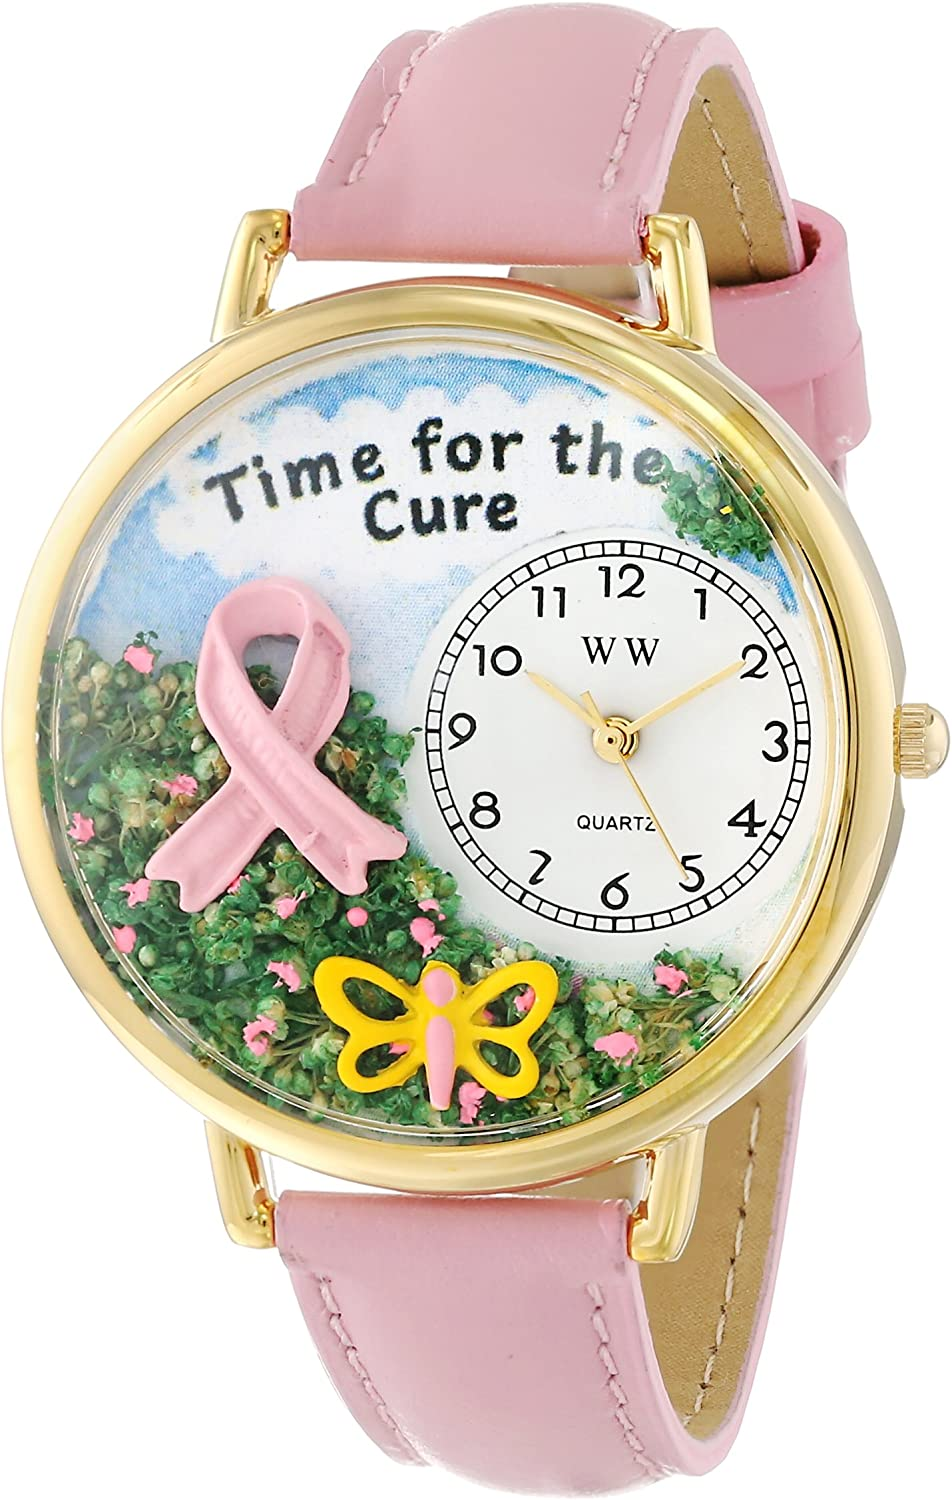 Whimsical Watches Women s G1110001 Time for the Cure Pink Leather Watch